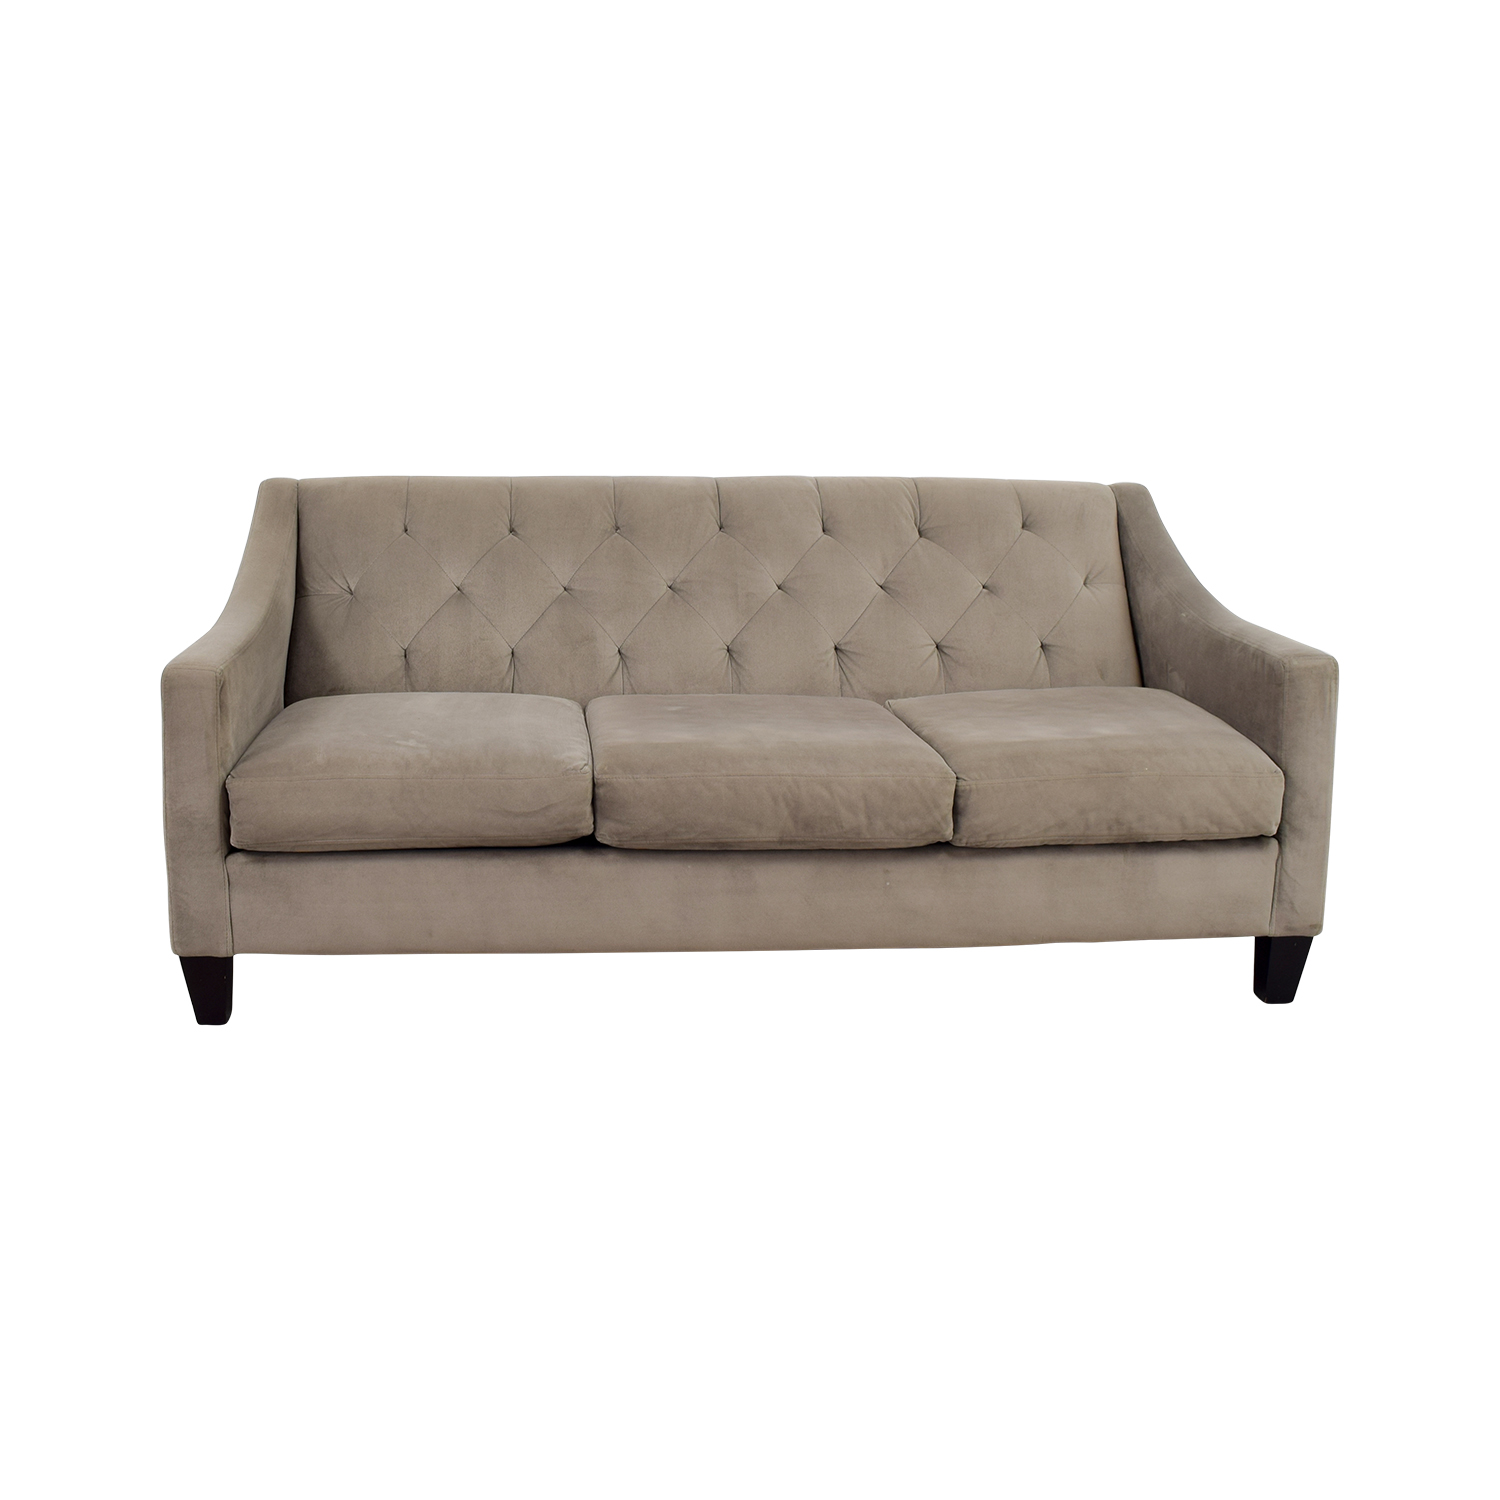 Macys Gray Microfiber Tufted Three-Cushion Couch / Sofas